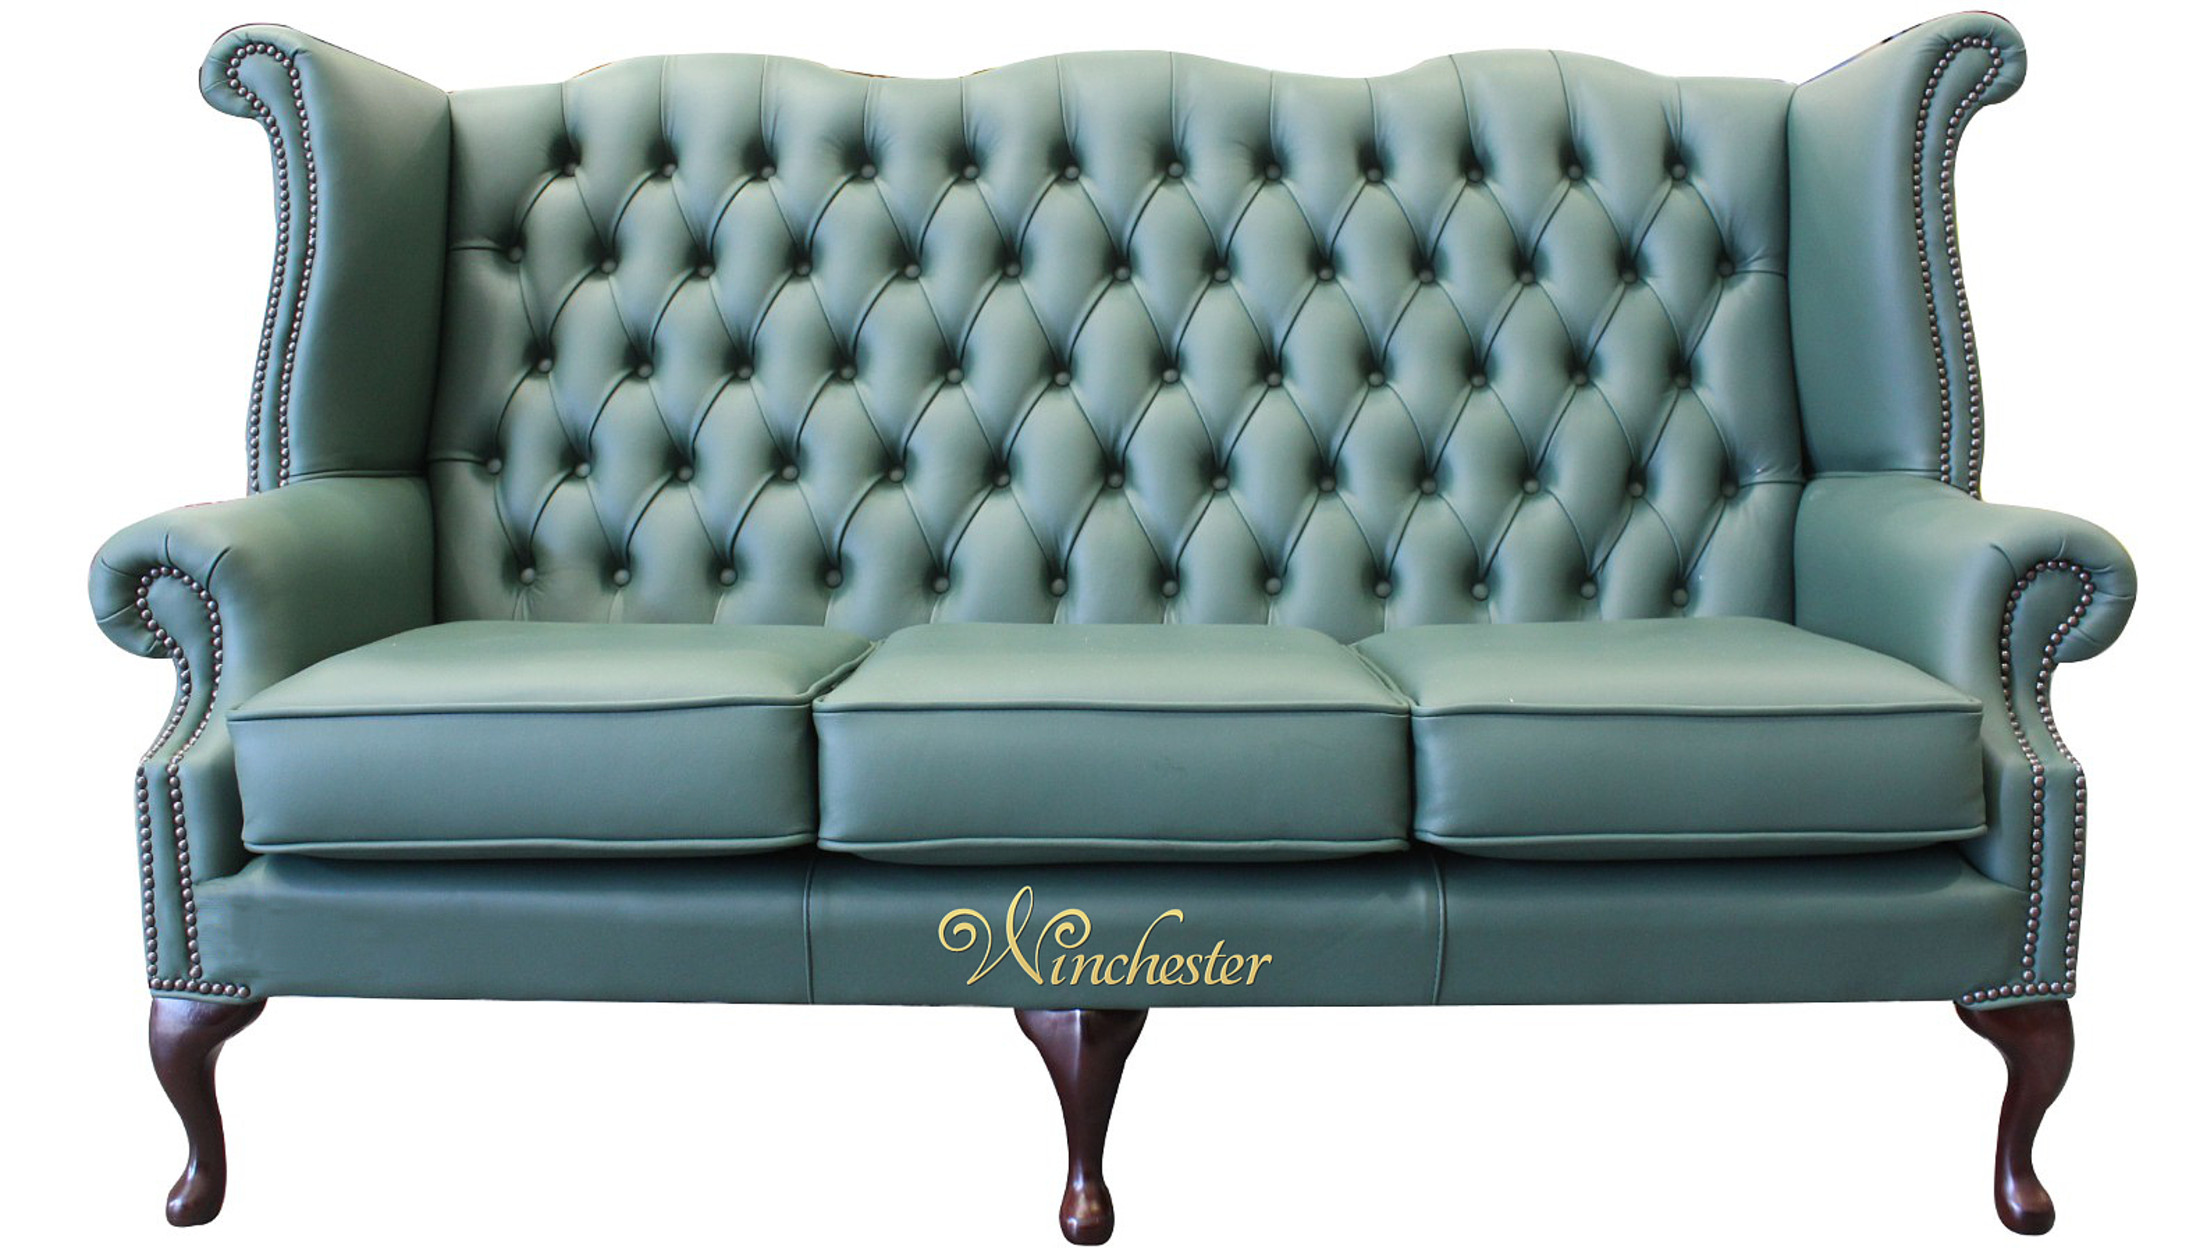 Elegant Chesterfield 3 Seater High Back Wing Sofa Jade Green Leather Wc